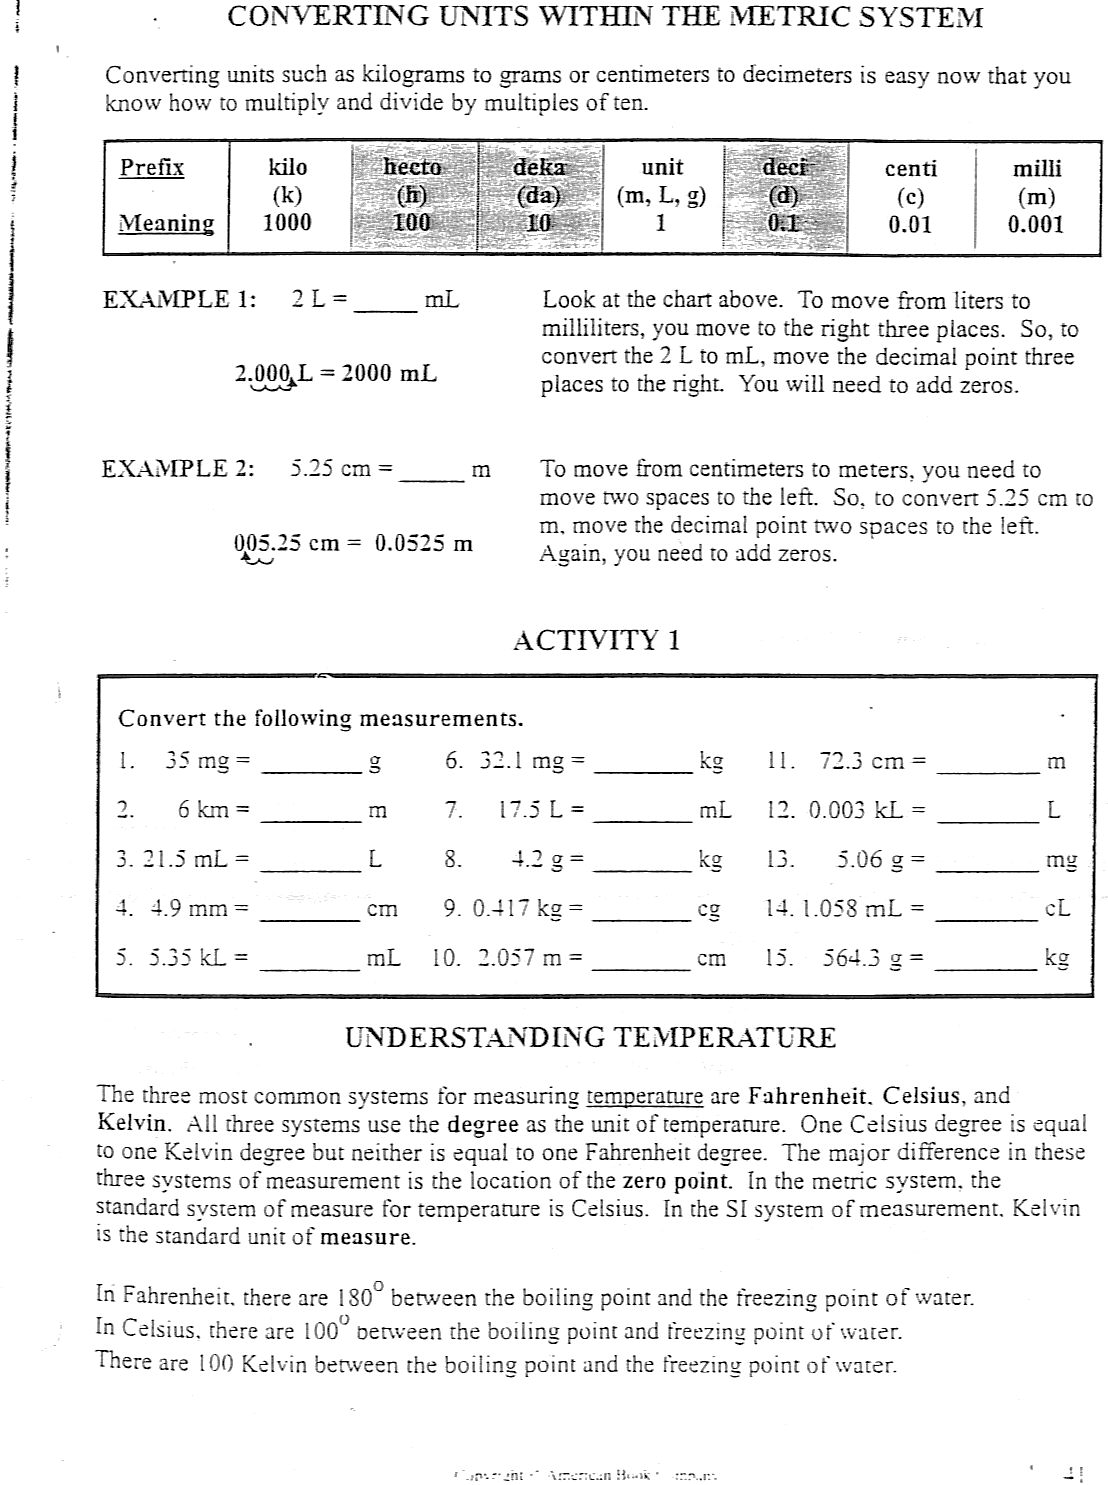 16 Best Images Of Metric System Worksheet Answers